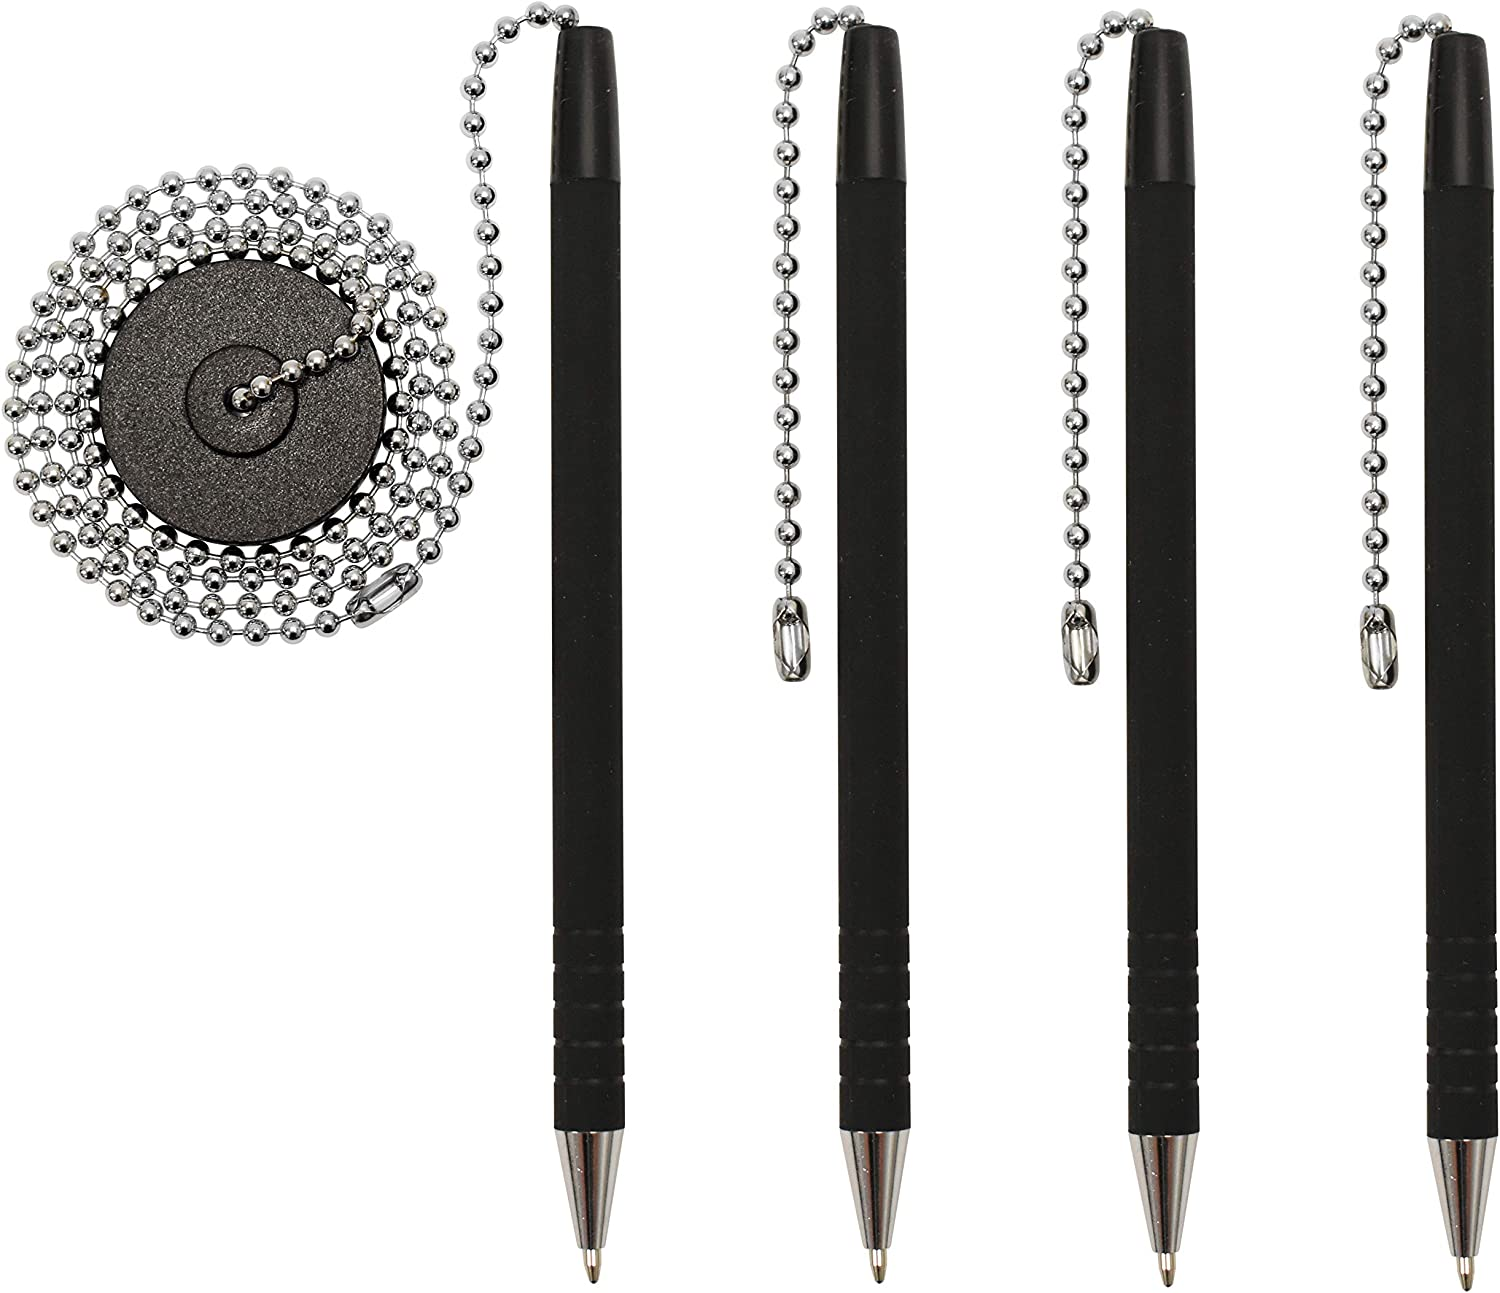 "Secure Pen With Chain And Office Pen Holder Adhesive, Reception Counter Pen With 26"" Ball Pen Chain, 4 Pens With Chain Attached Per Pack, Rubber Grip, Black Ink, Easily Refillable"